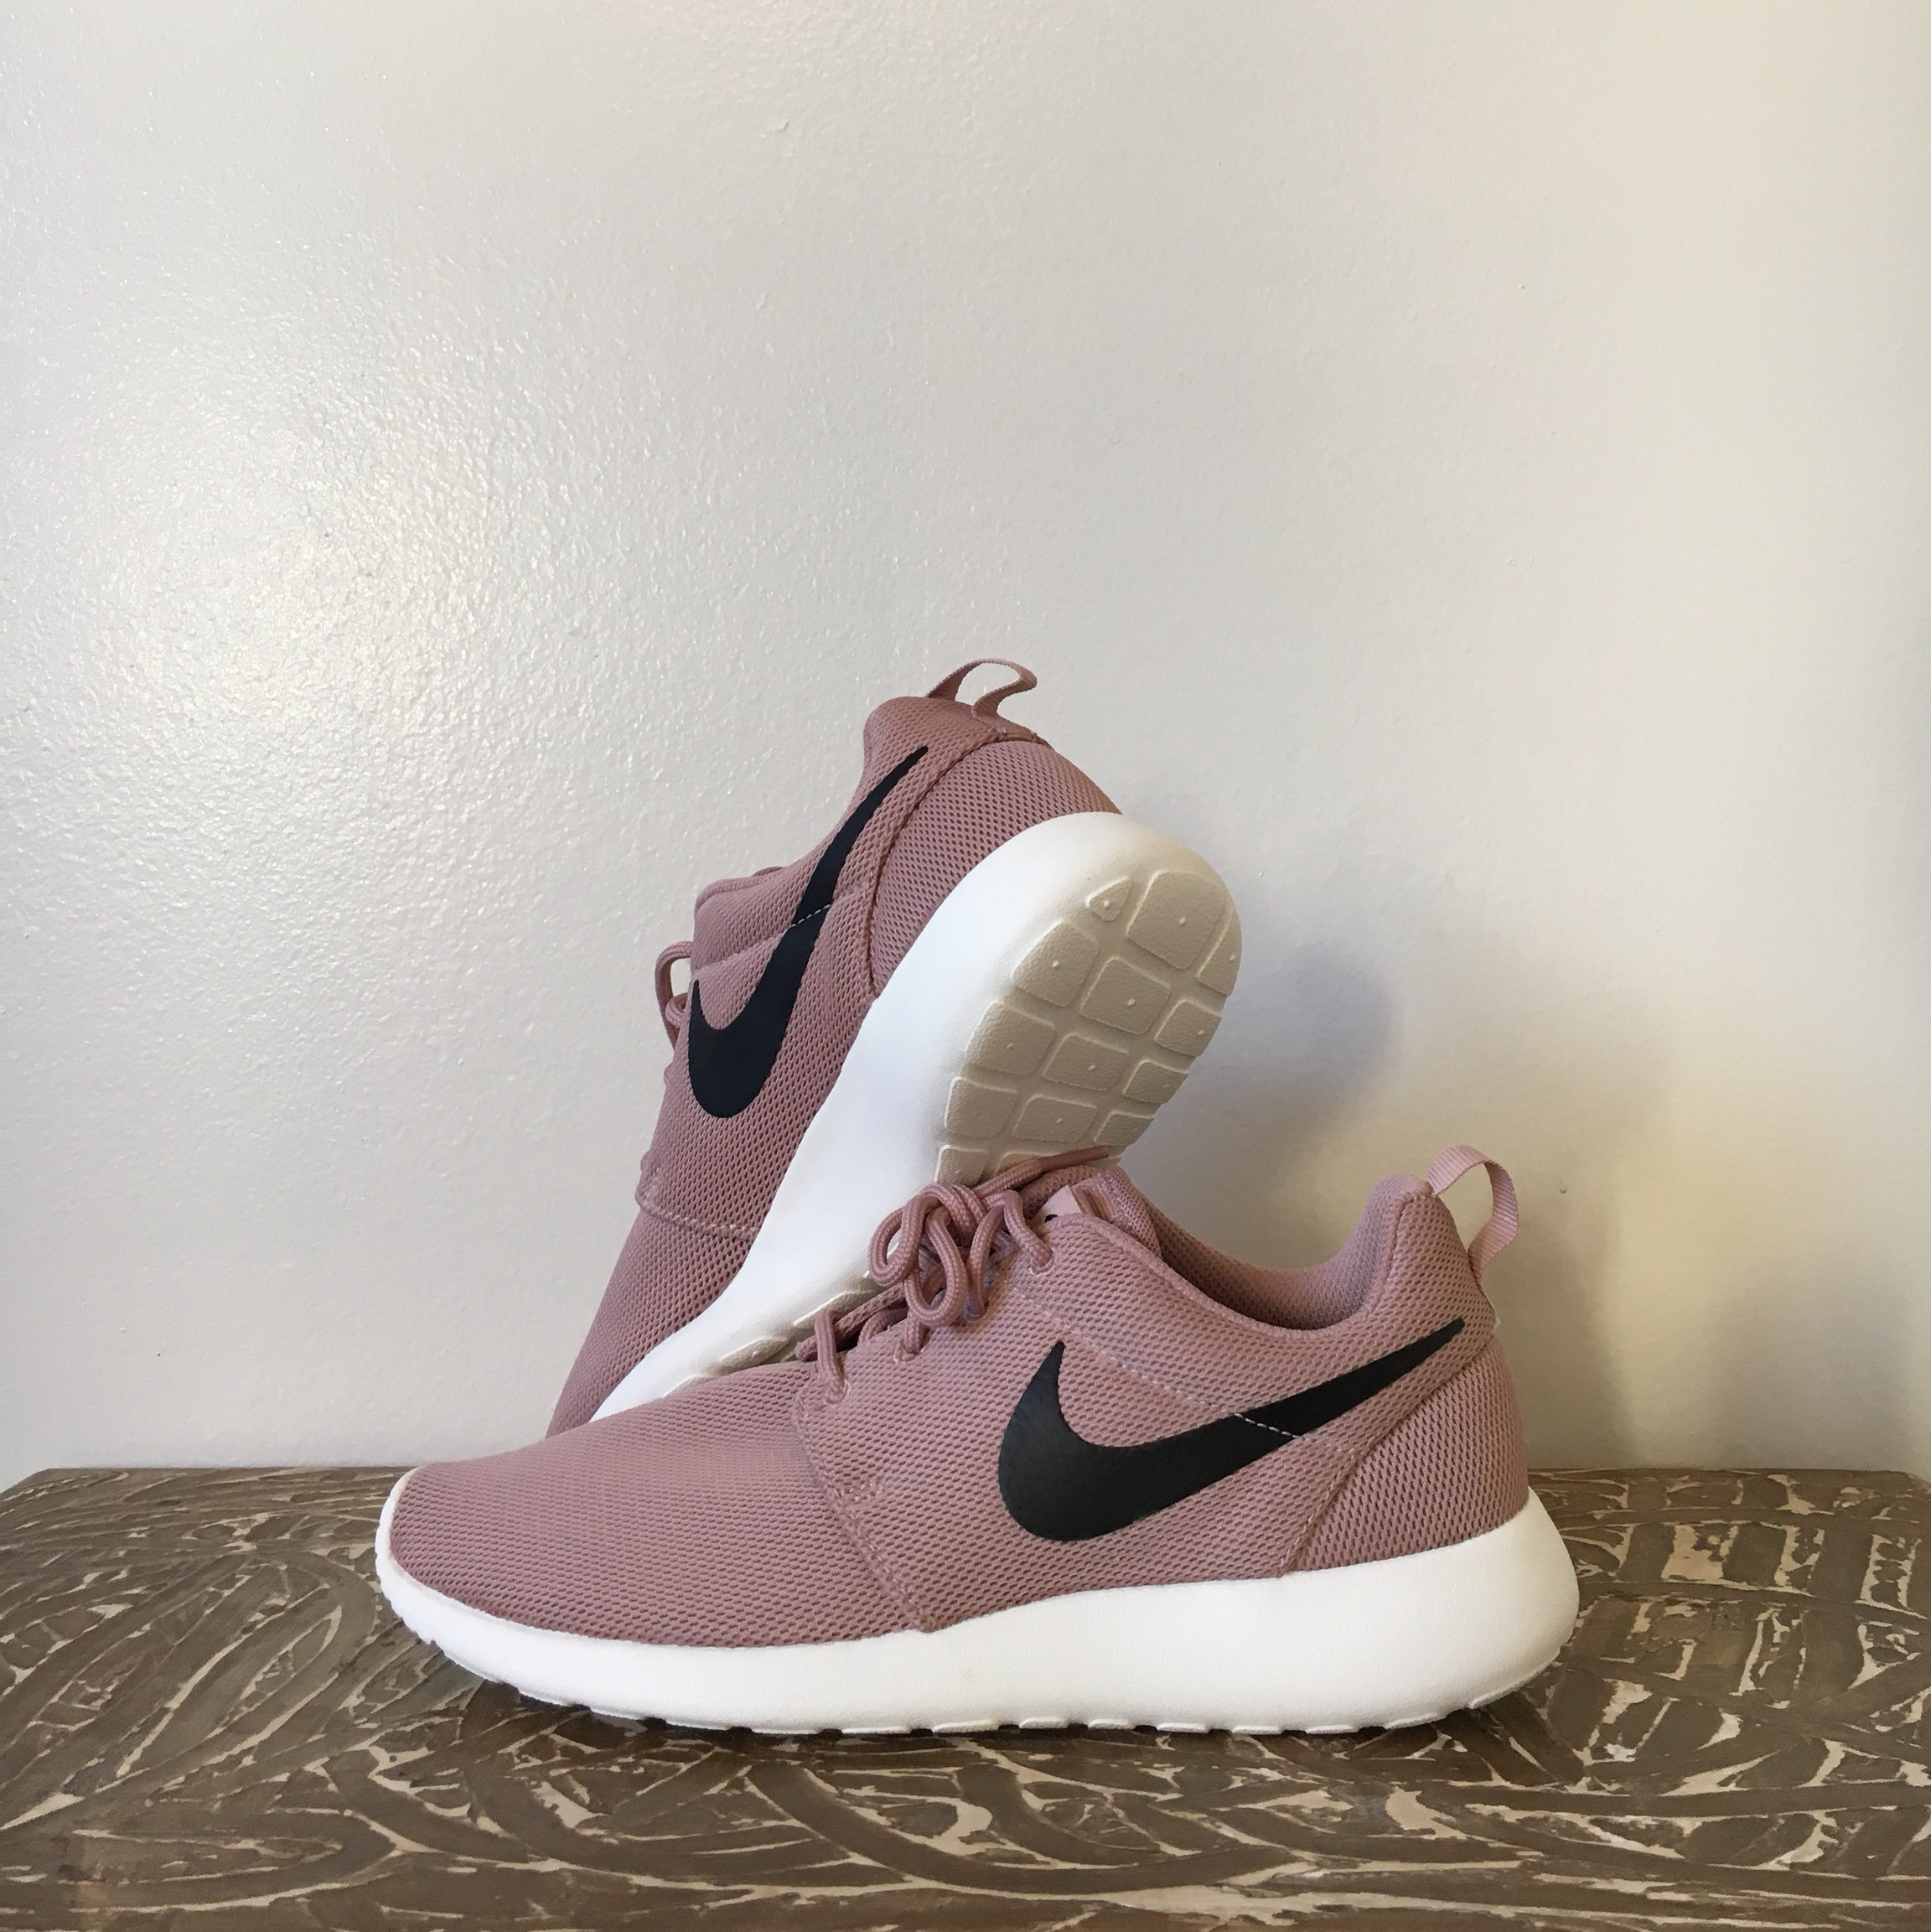 Nike Roshe One Women's Size: 7.5 Particle Depop